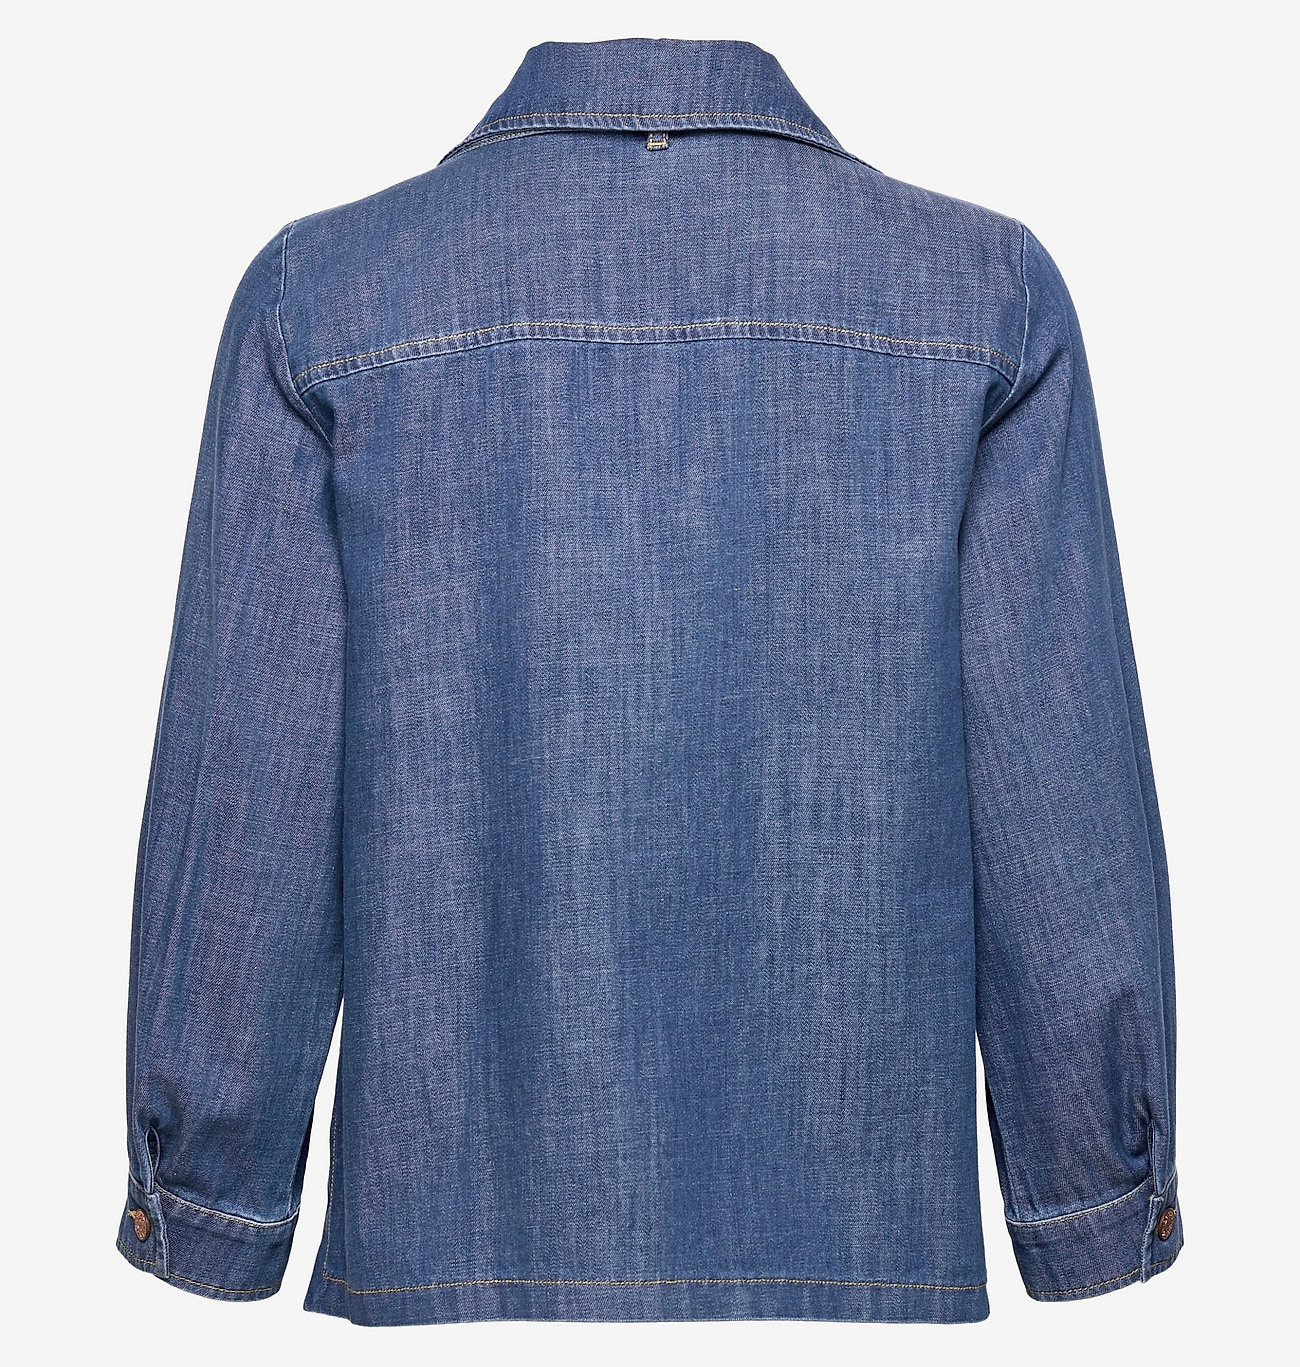 See by Chloe Dames blouse, blauw